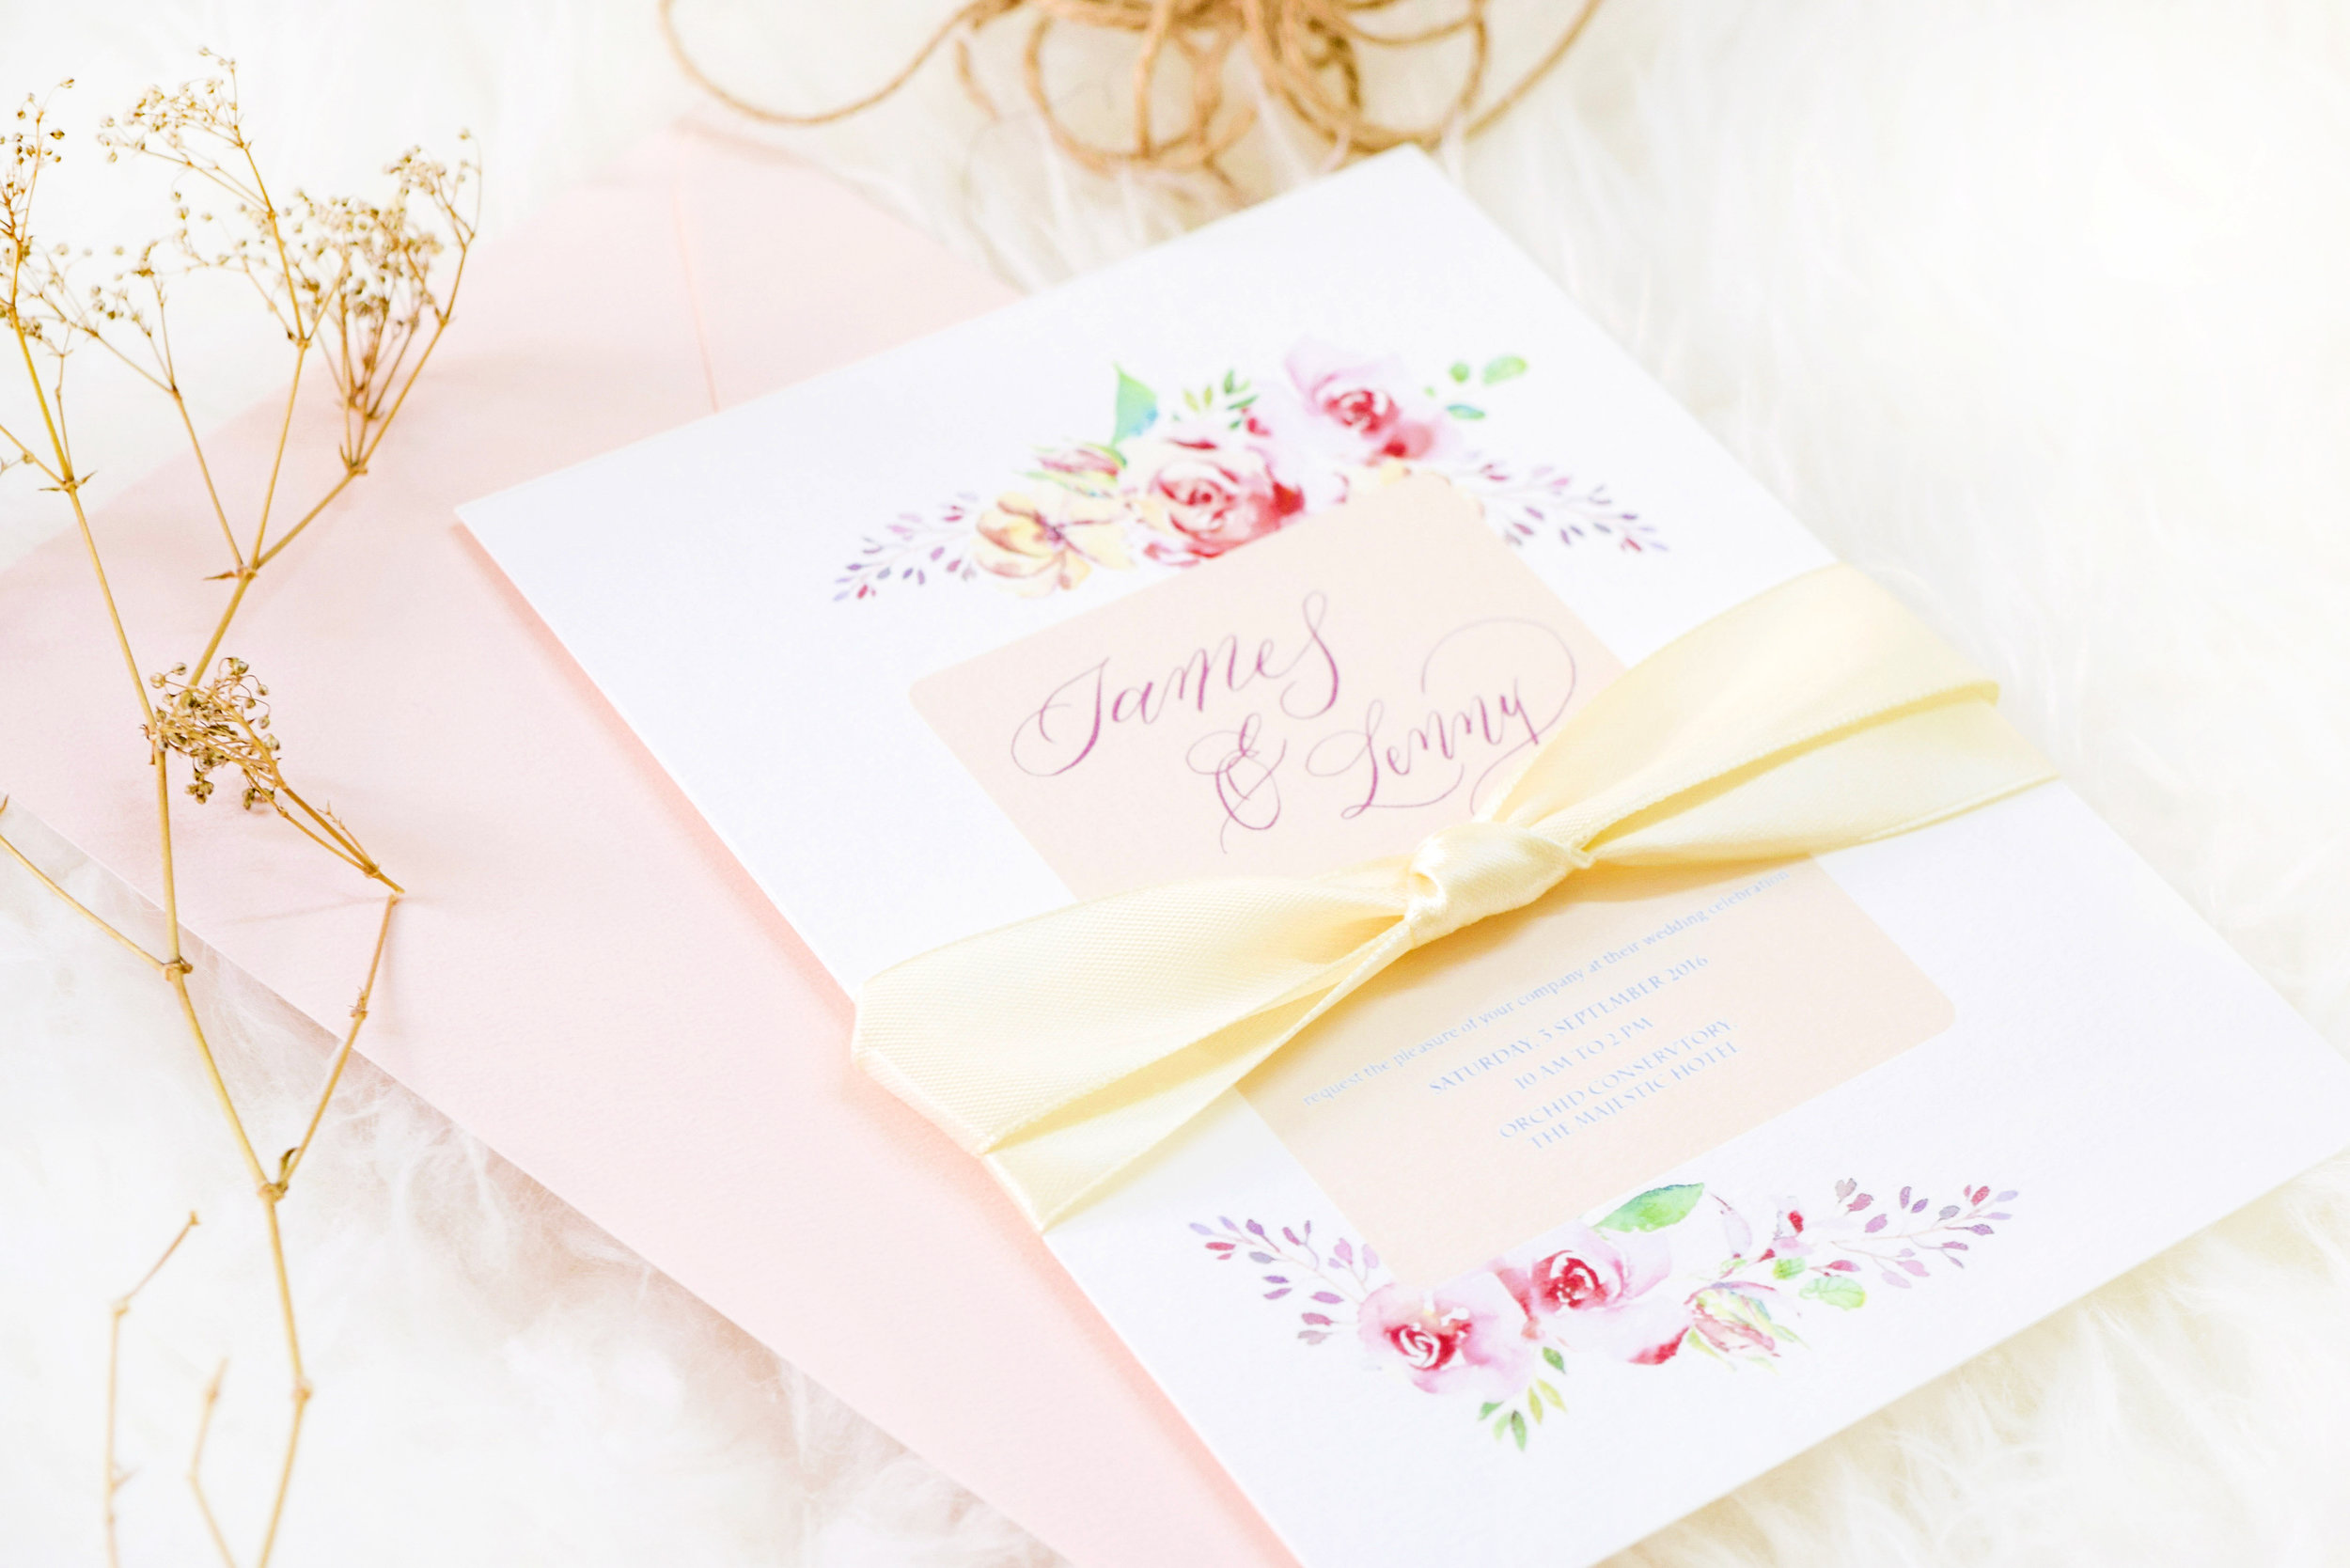 Bespoke calligraphy - Personalised calligraphy and design for weddings, corporate events, parties and more ! Think bespoke invitation suites, calligraphy wedding vows, place cards, menus and stationery, we look forward to making your visions a reality today.